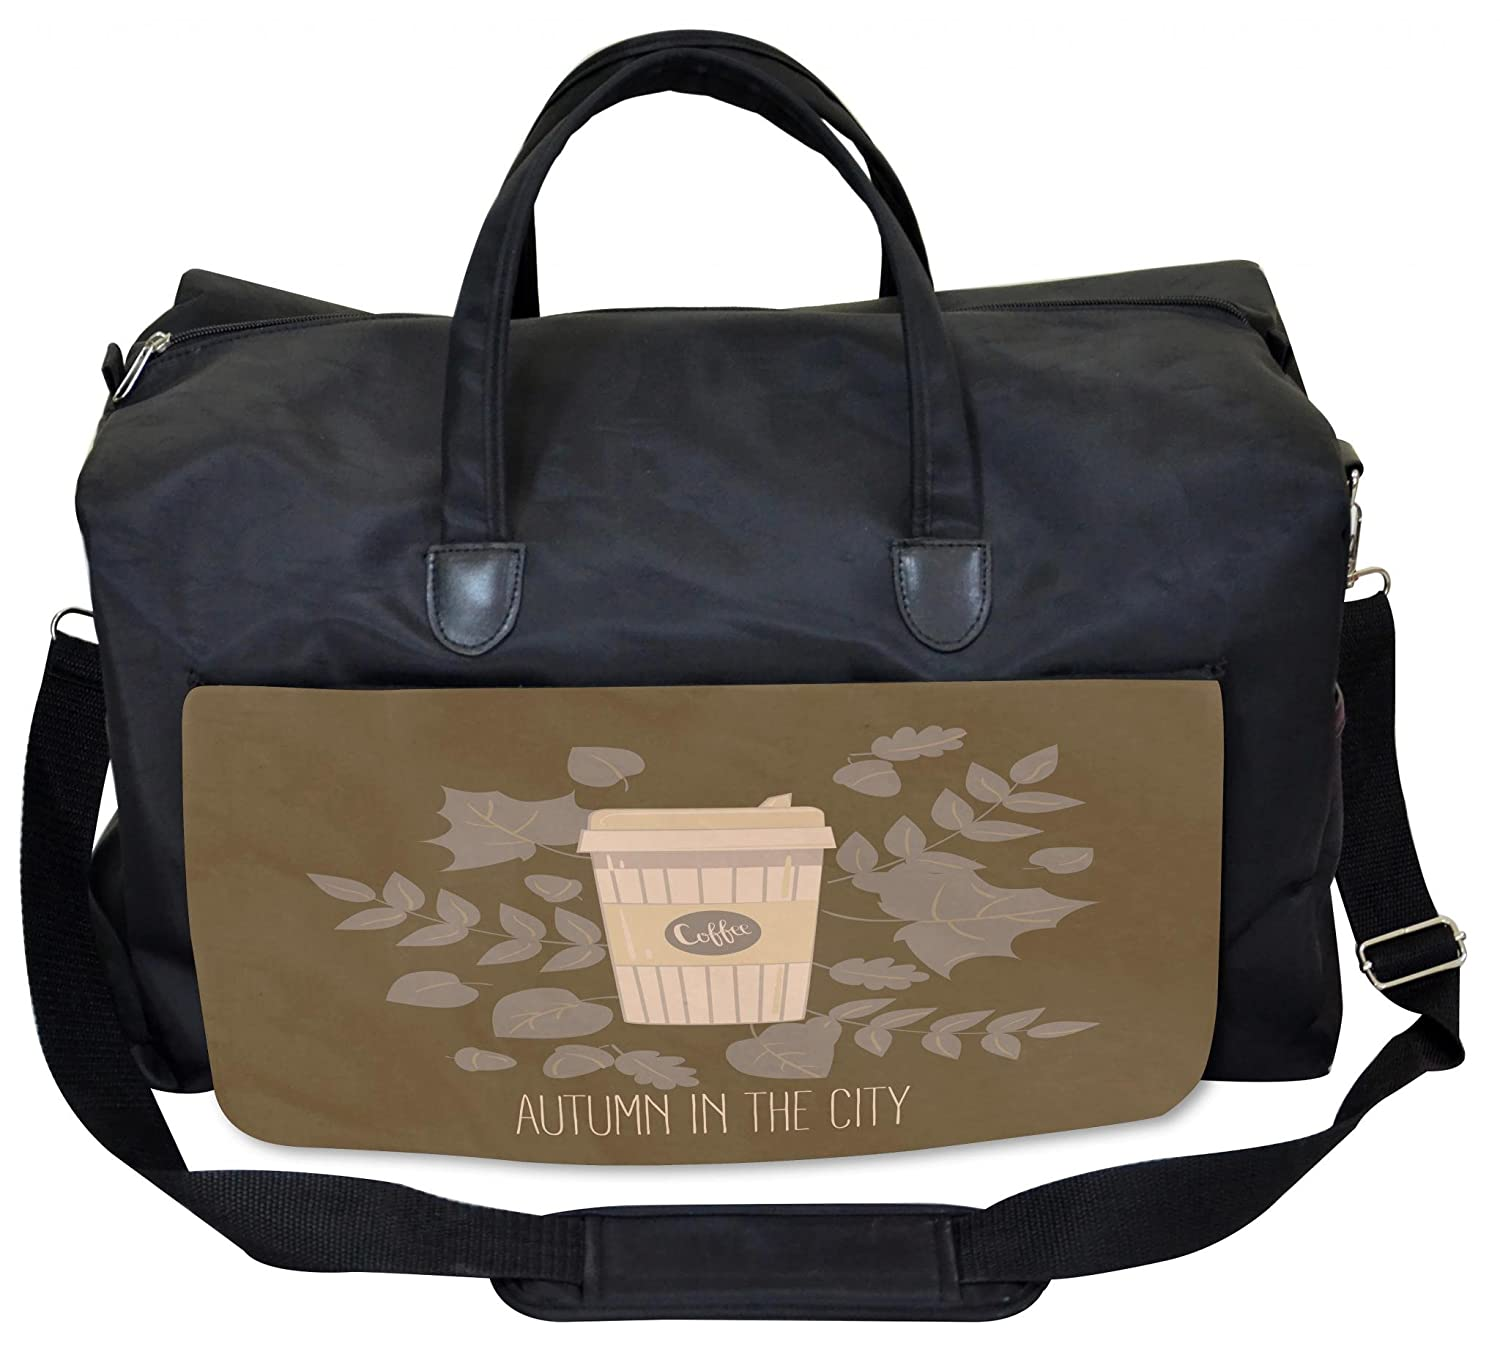 bfd6defb04 Hot Gym Bag   The Shred Centre